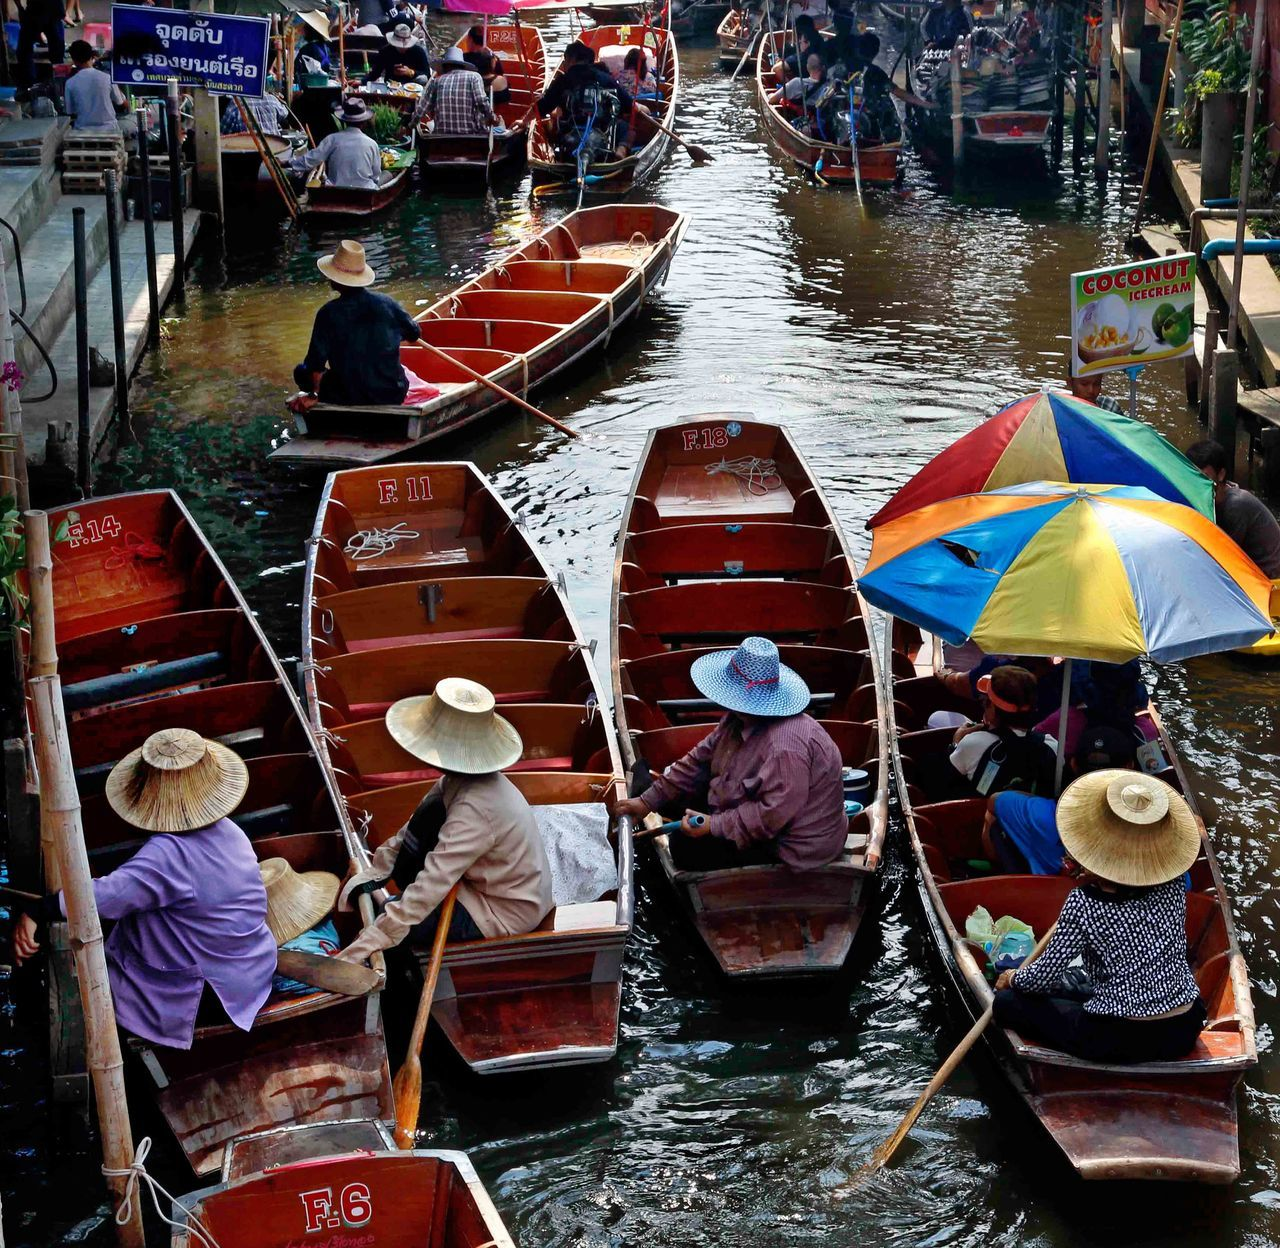 nautical vessel, transportation, water, boat, men, canal, oar, real people, rowing, mode of transport, women, day, moored, high angle view, large group of people, asian style conical hat, rowboat, sitting, outdoors, occupation, gondolier, canoe, wooden raft, lake, sailing, harbor, gondola - traditional boat, adult, people